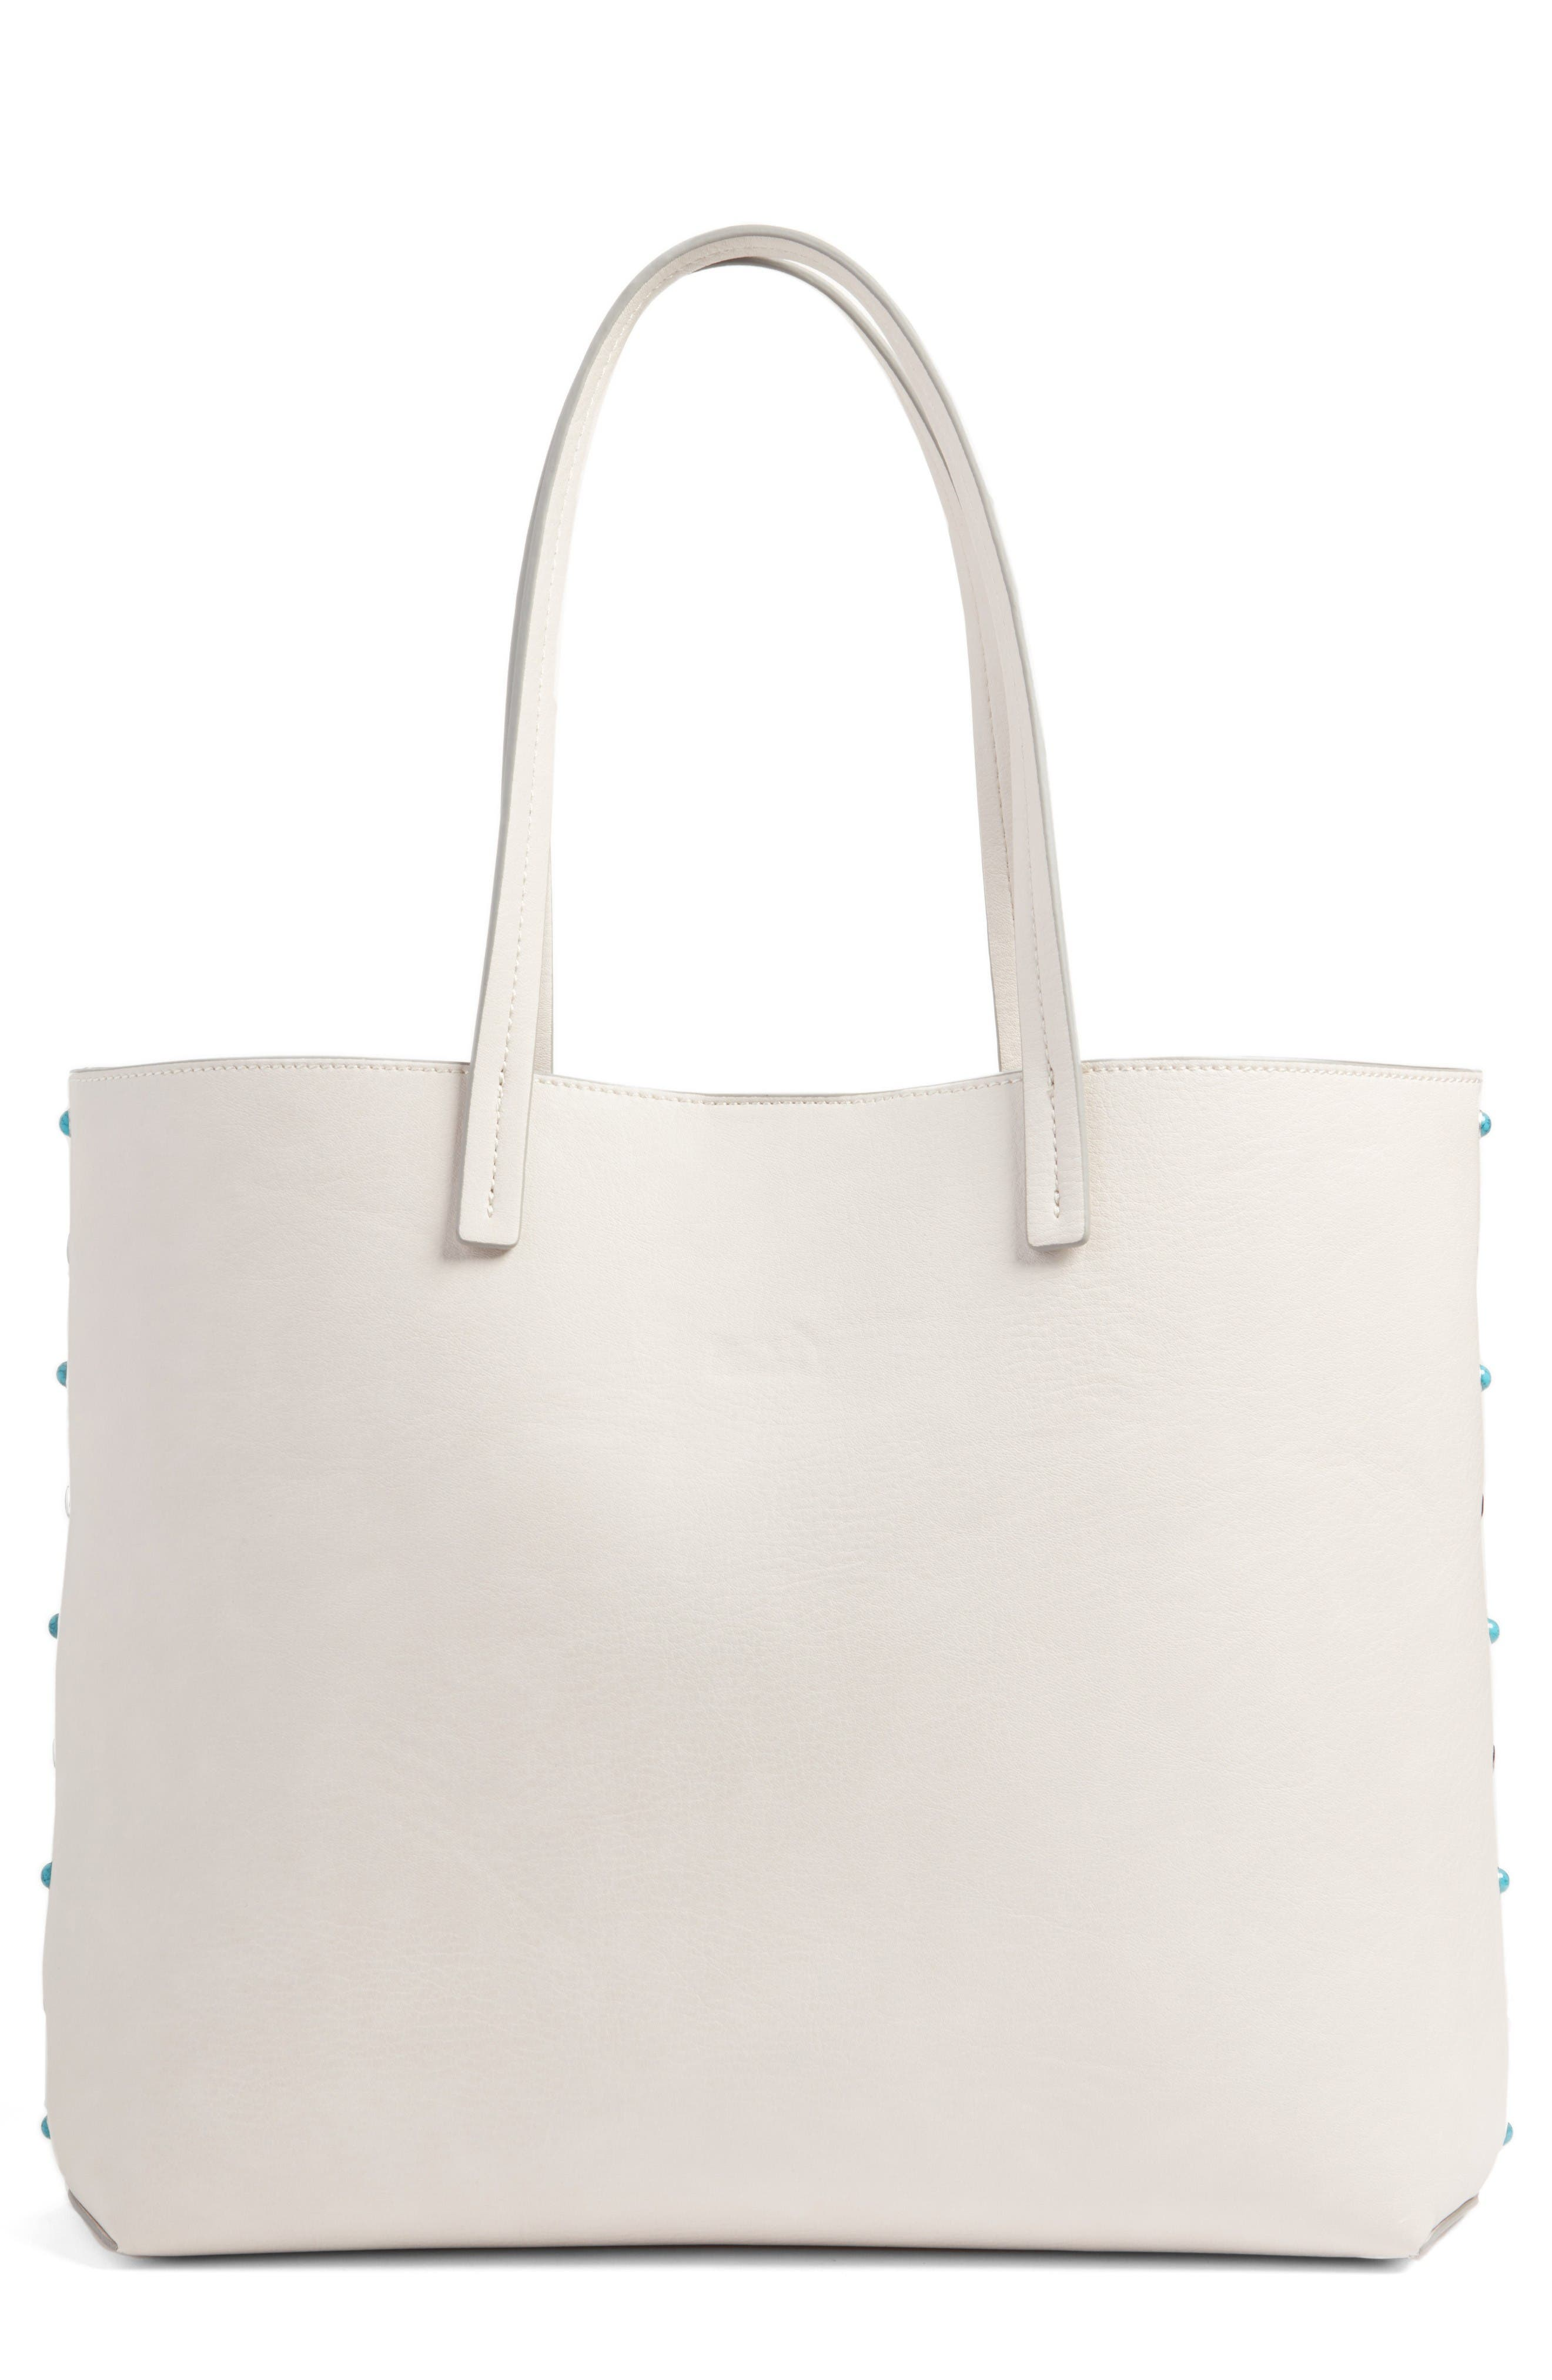 Chelsea28 Olivia Faux Leather Tote